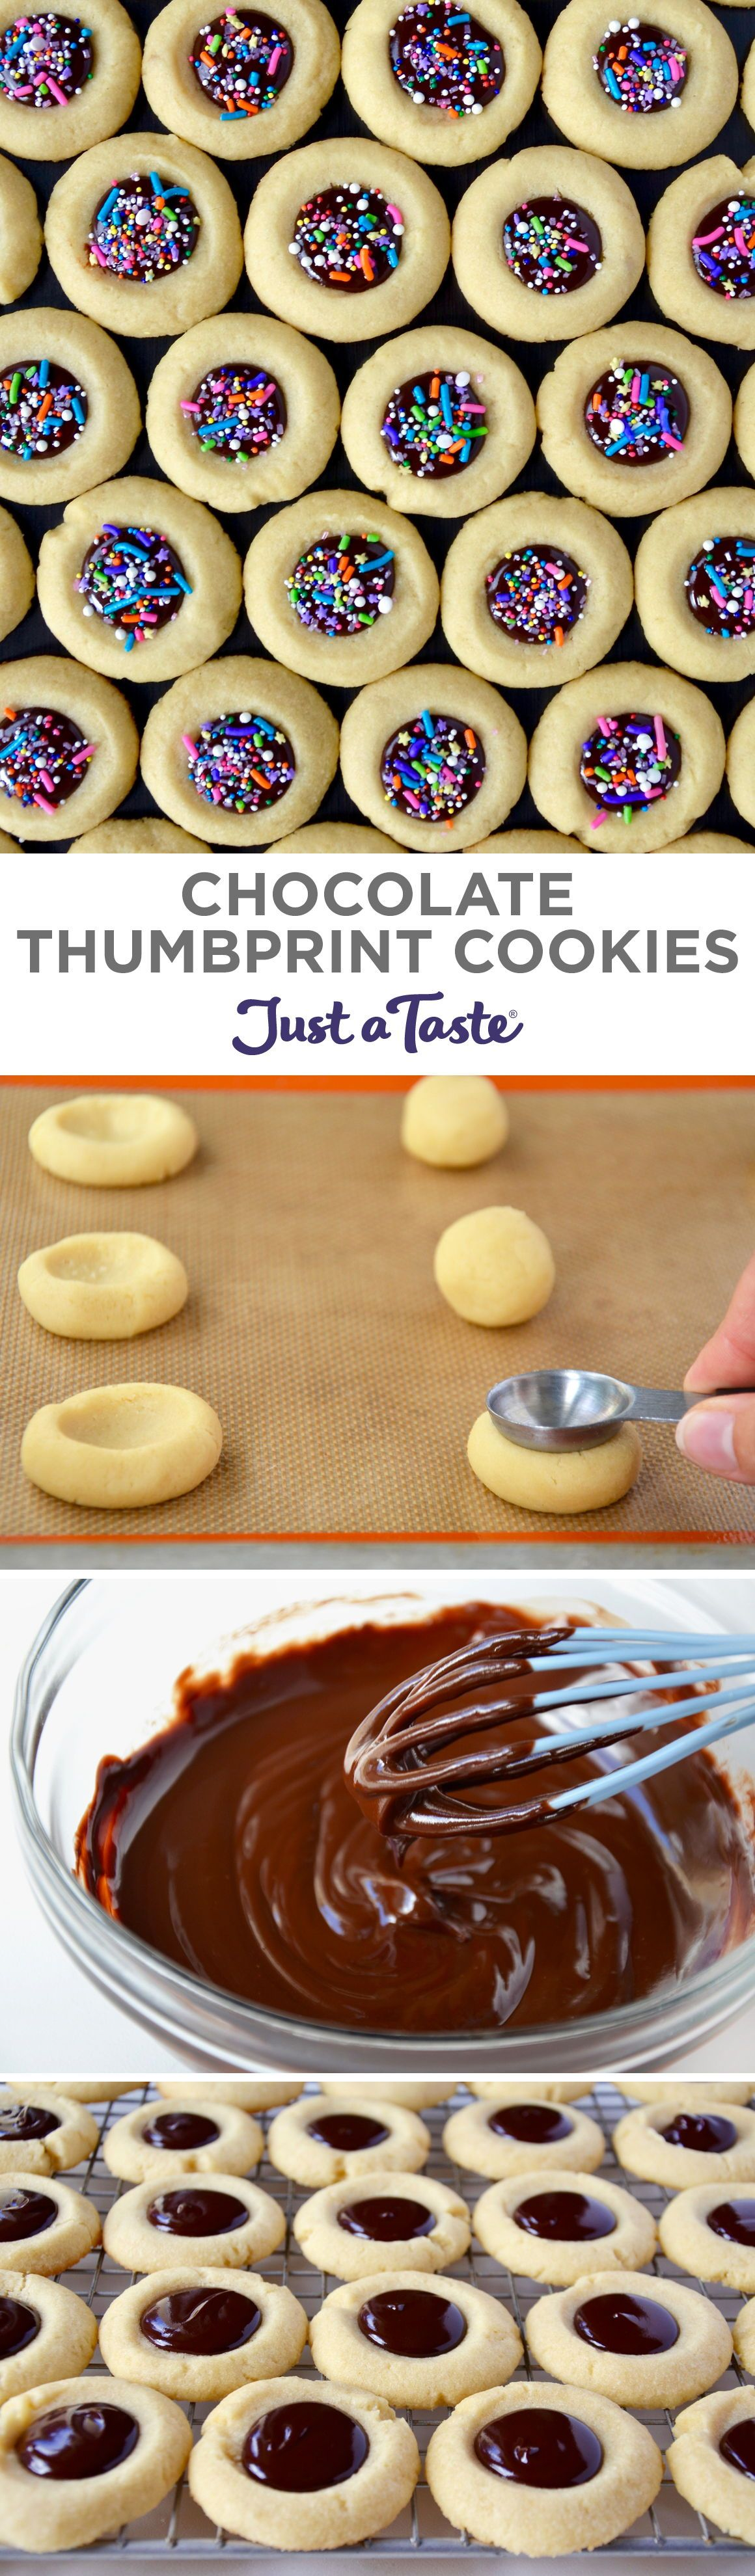 Chocolate Thumbprint Cookies  Just a Taste These easy Chocolate Thumbprint Cookies are the perfect addition to your holiday cookie platter A classic buttery shortbread co...